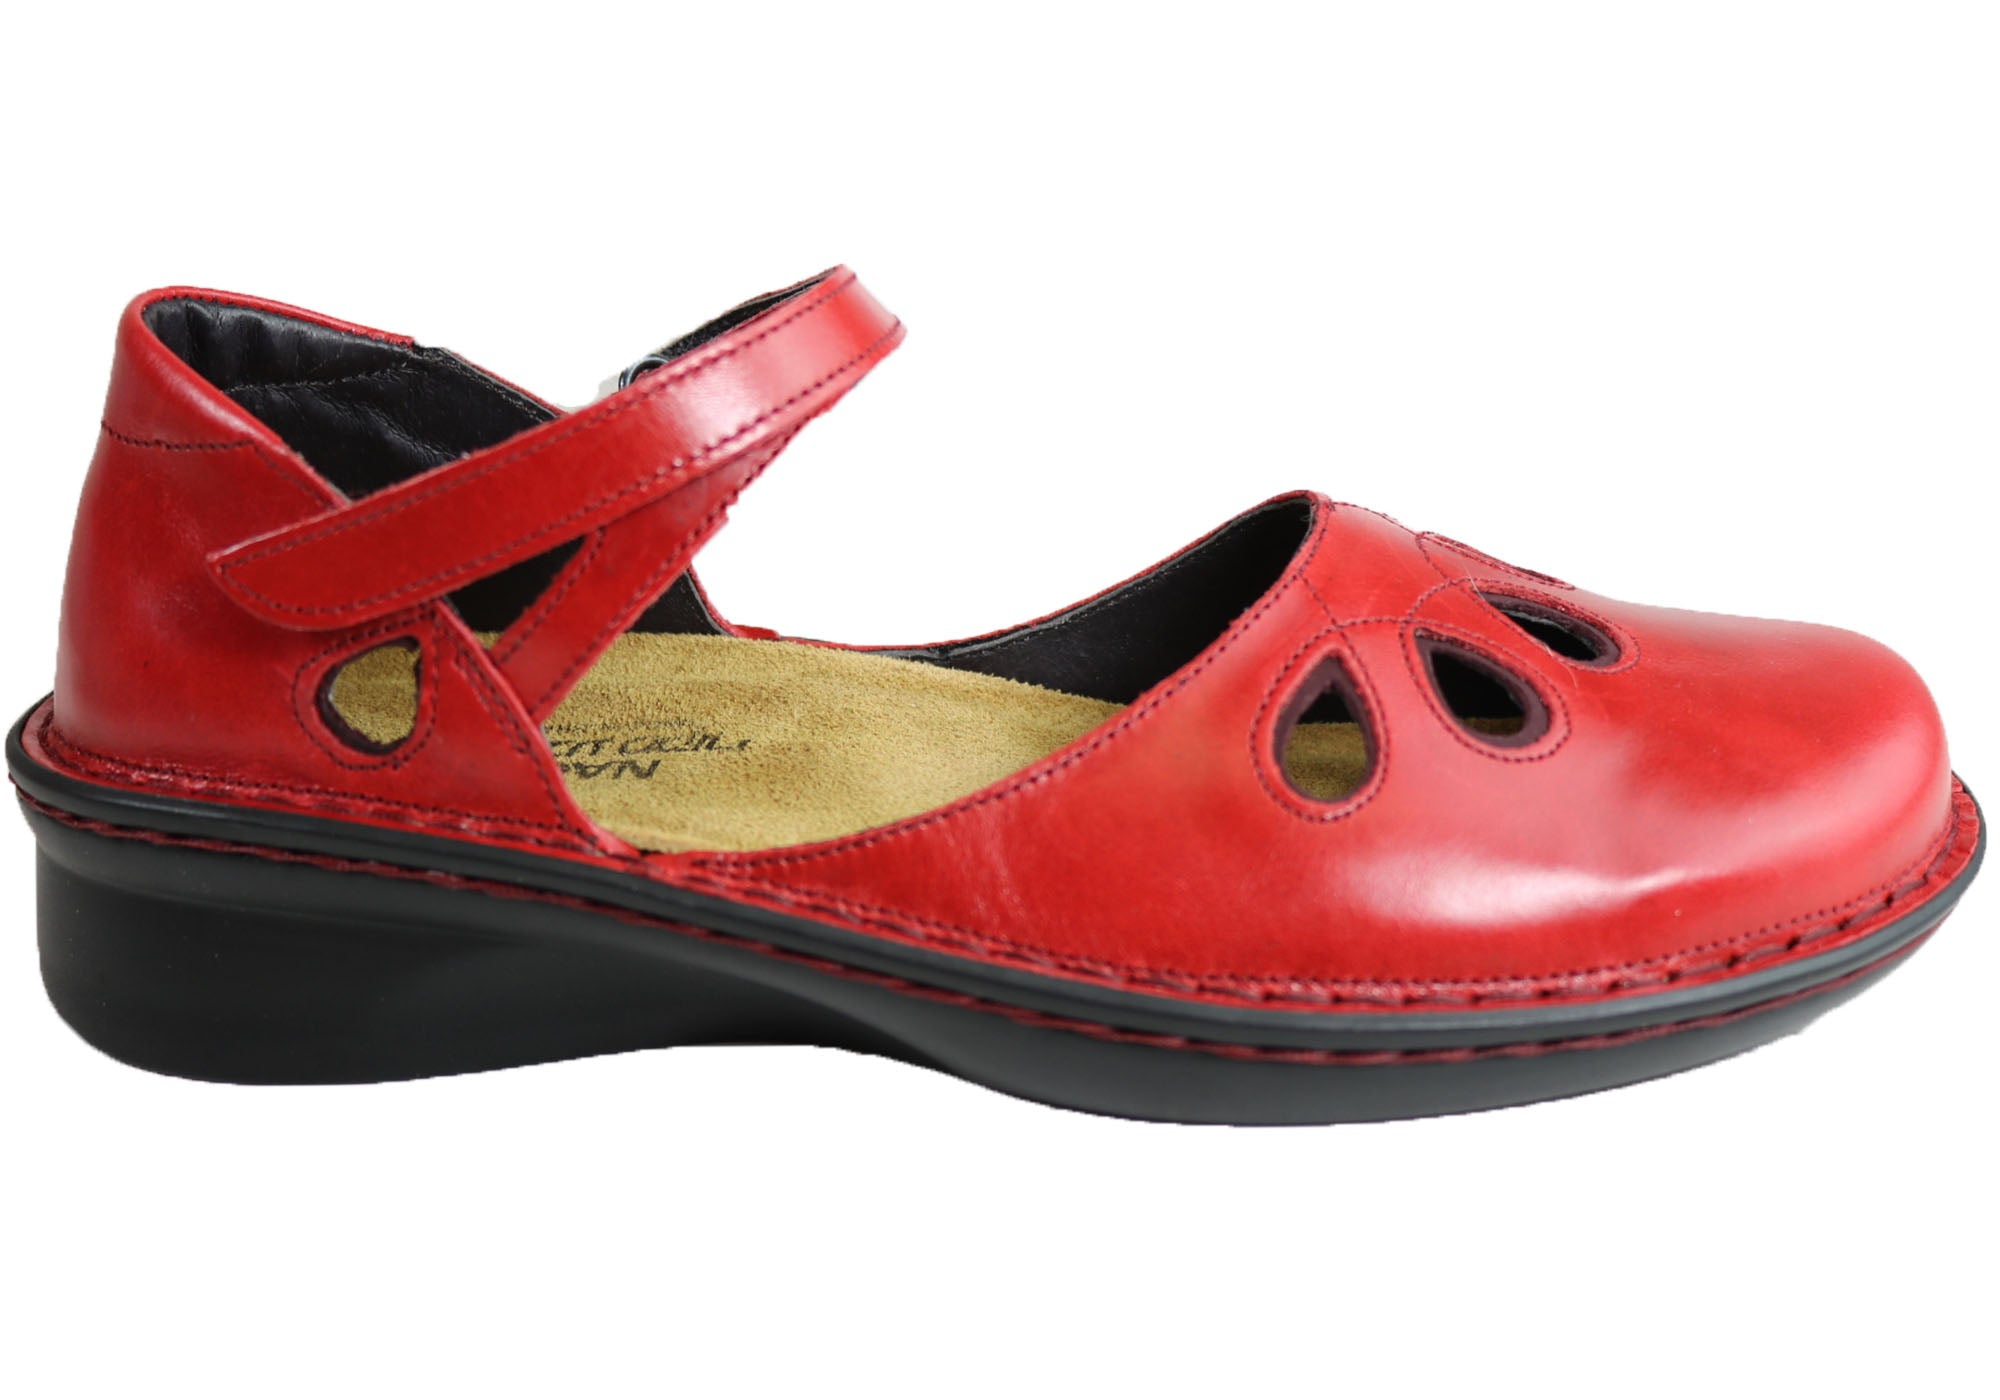 a5cc66deeb Details about NEW NAOT MOTIFF WOMENS COMFORT CUSHIONED ORTHOTIC FRIENDLY  MARY JANE SHOES